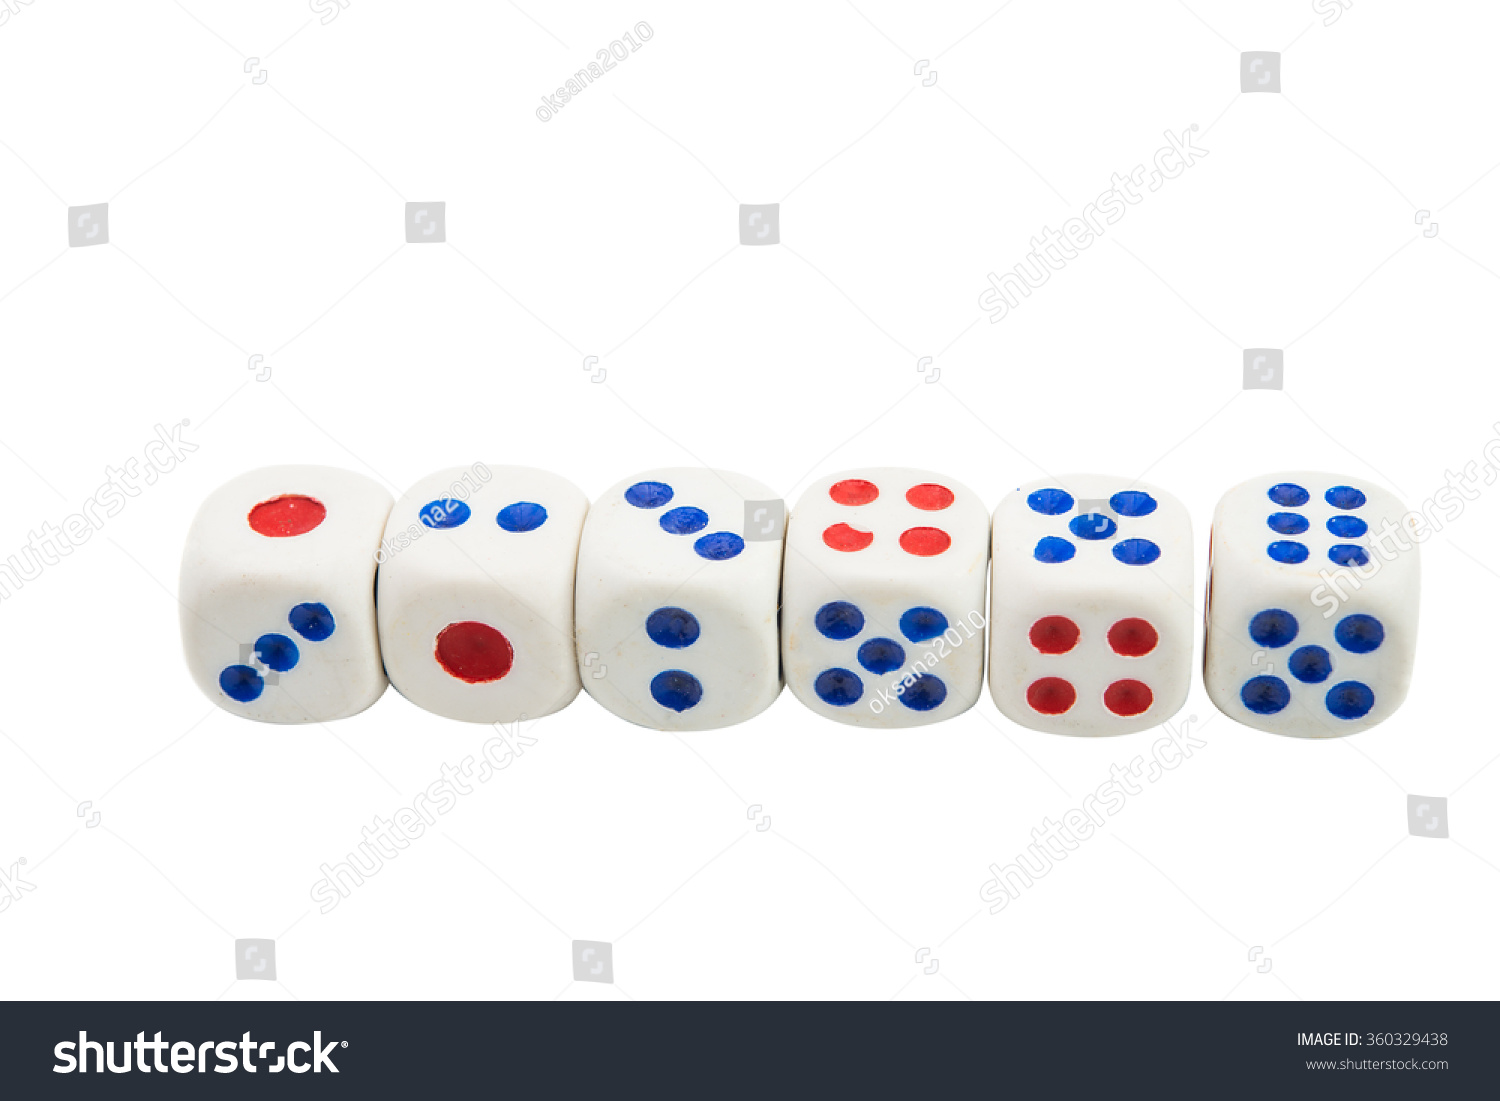 poker dots deutsch